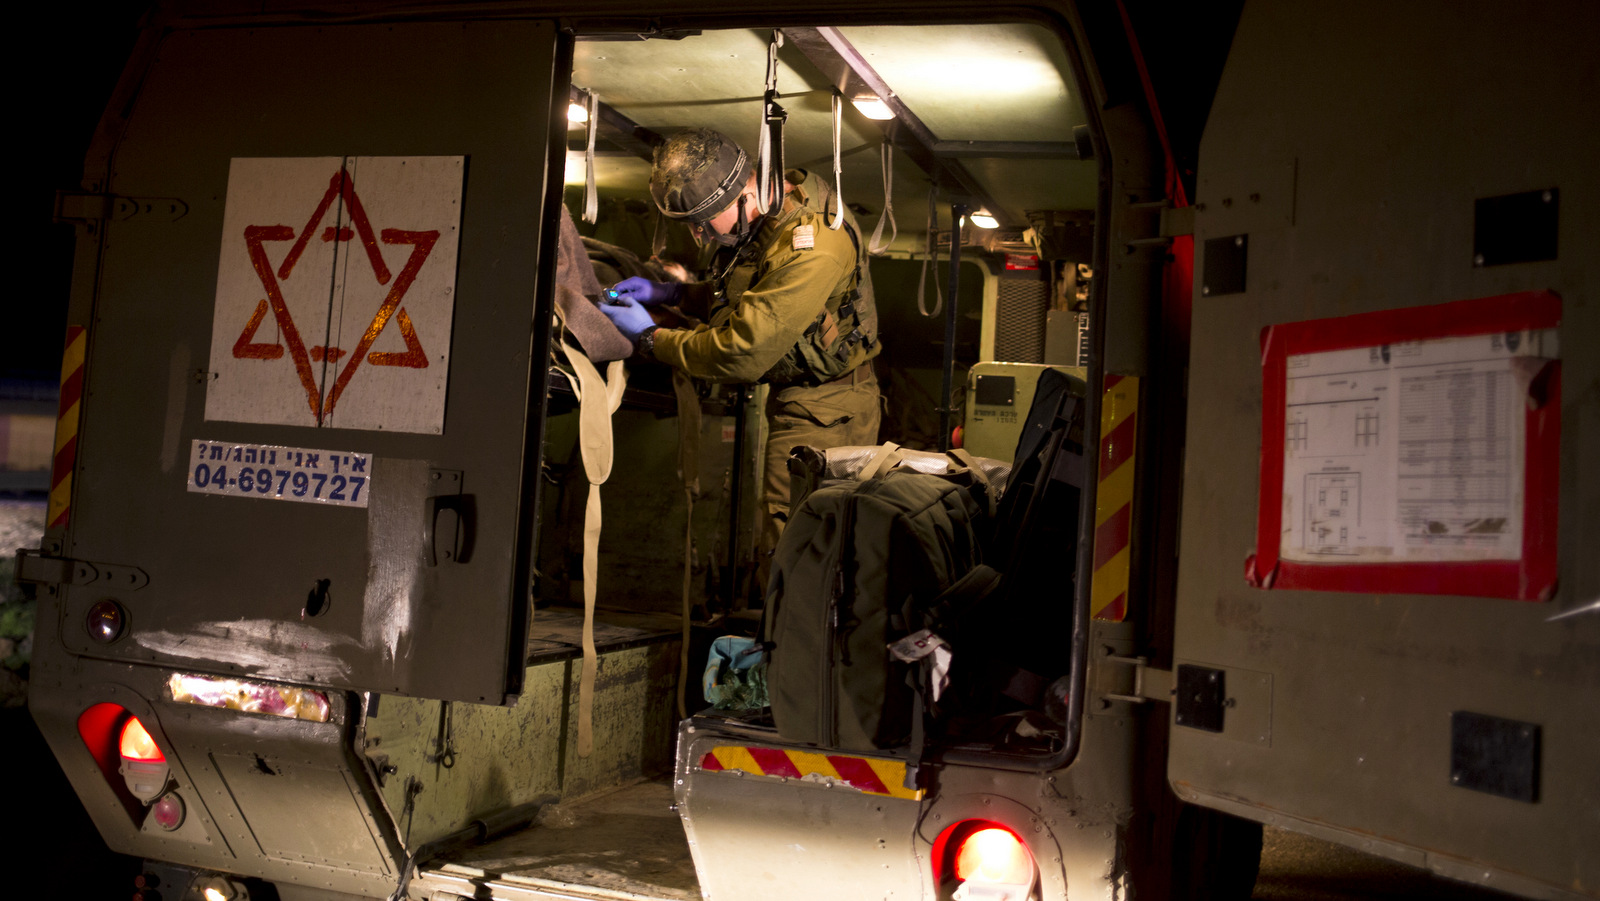 In this Thursday, April 6, 2017 photo made in Israeli controlled Golan Heights, Israeli military medics assist wounded Syrians. Seven wounded Syrians crossed into Israeli controlled Heights Thursday night have received immediate treatment and were hospitalized later on. They are the latest group of Syrian fighters receiving free medical care through an Israeli military program operating since 2013. (AP/Dusan Vranic)